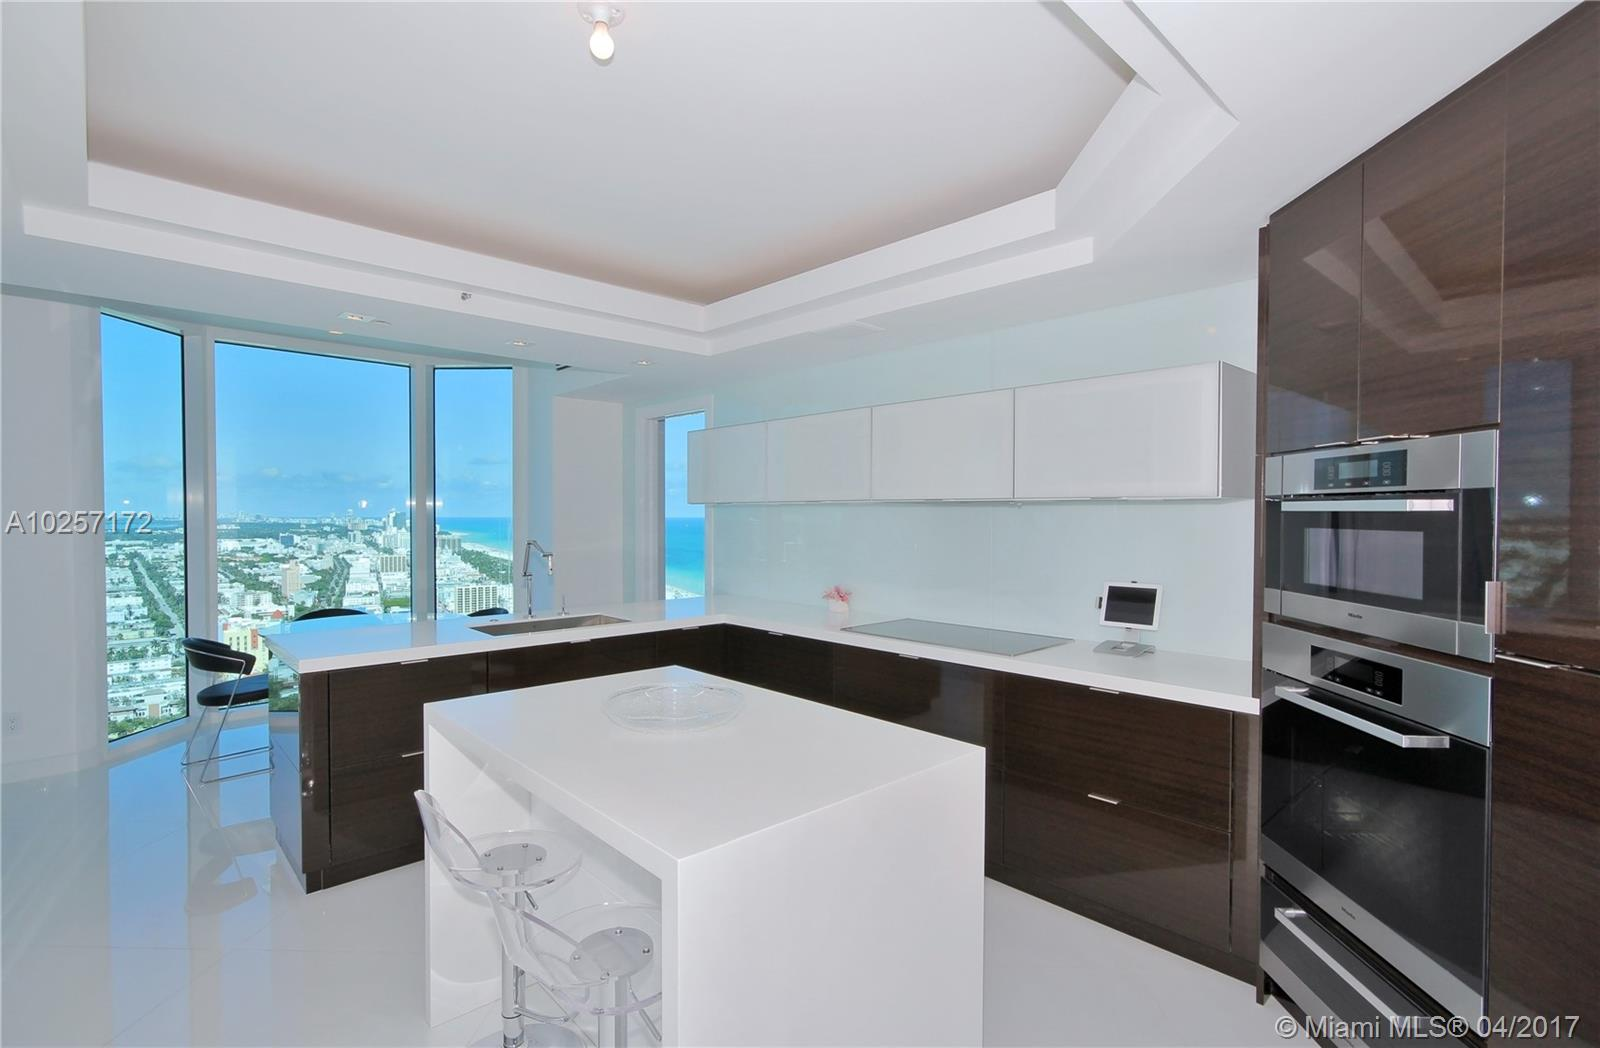 300 Pointe dr-LPH2 miami-beach--fl-33139-a10257172-Pic10